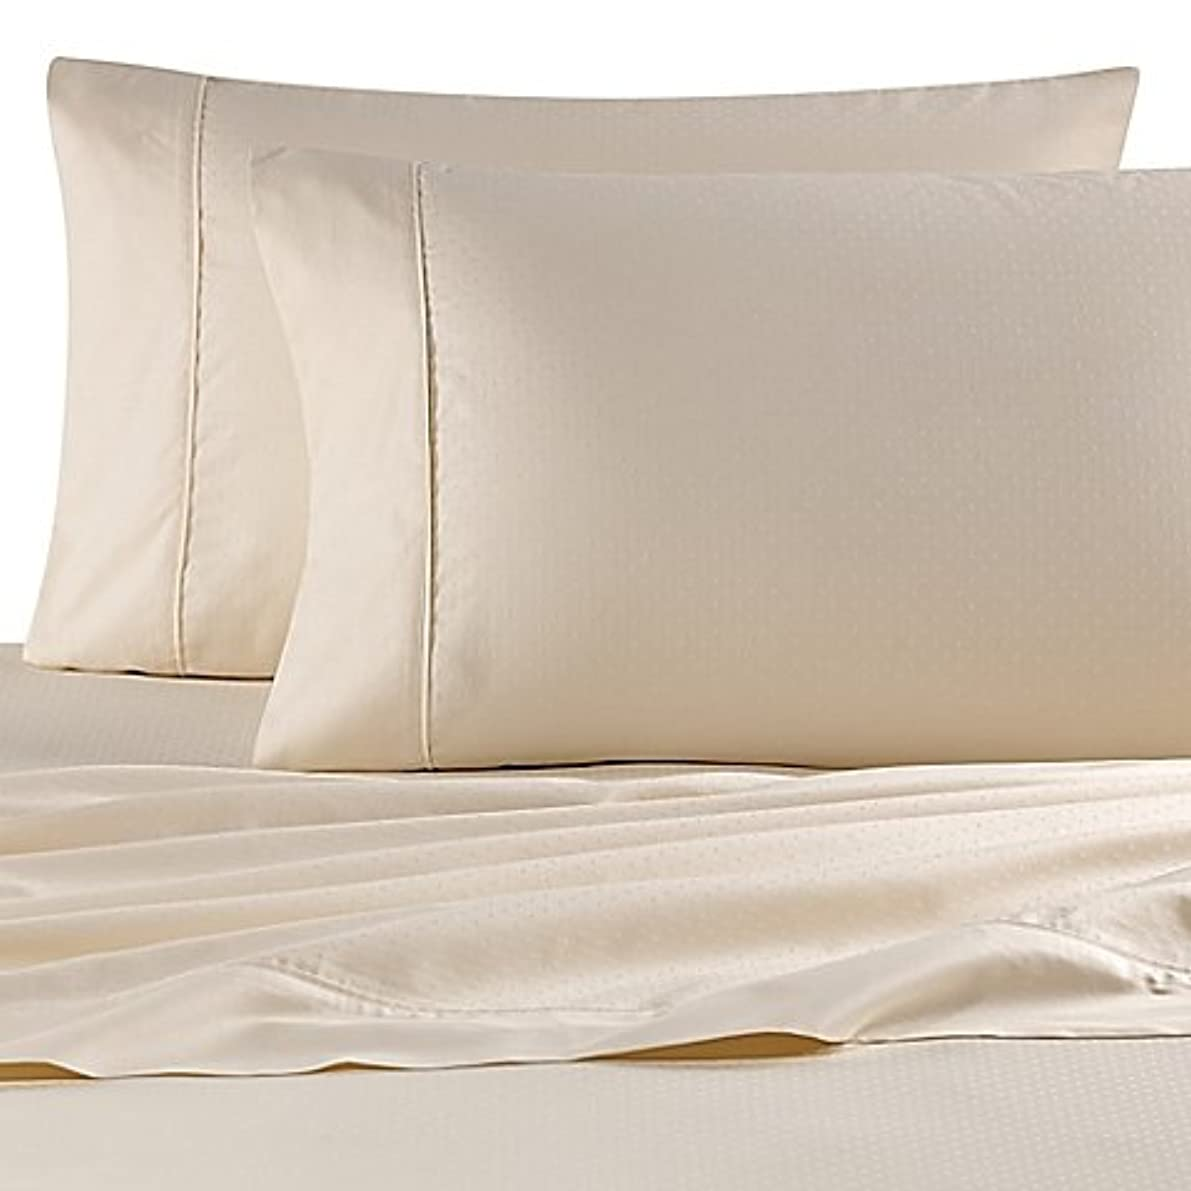 Wamsutta 620 Thread Count Cotton King Pillowcases in Ivory Dot (Set of 2)